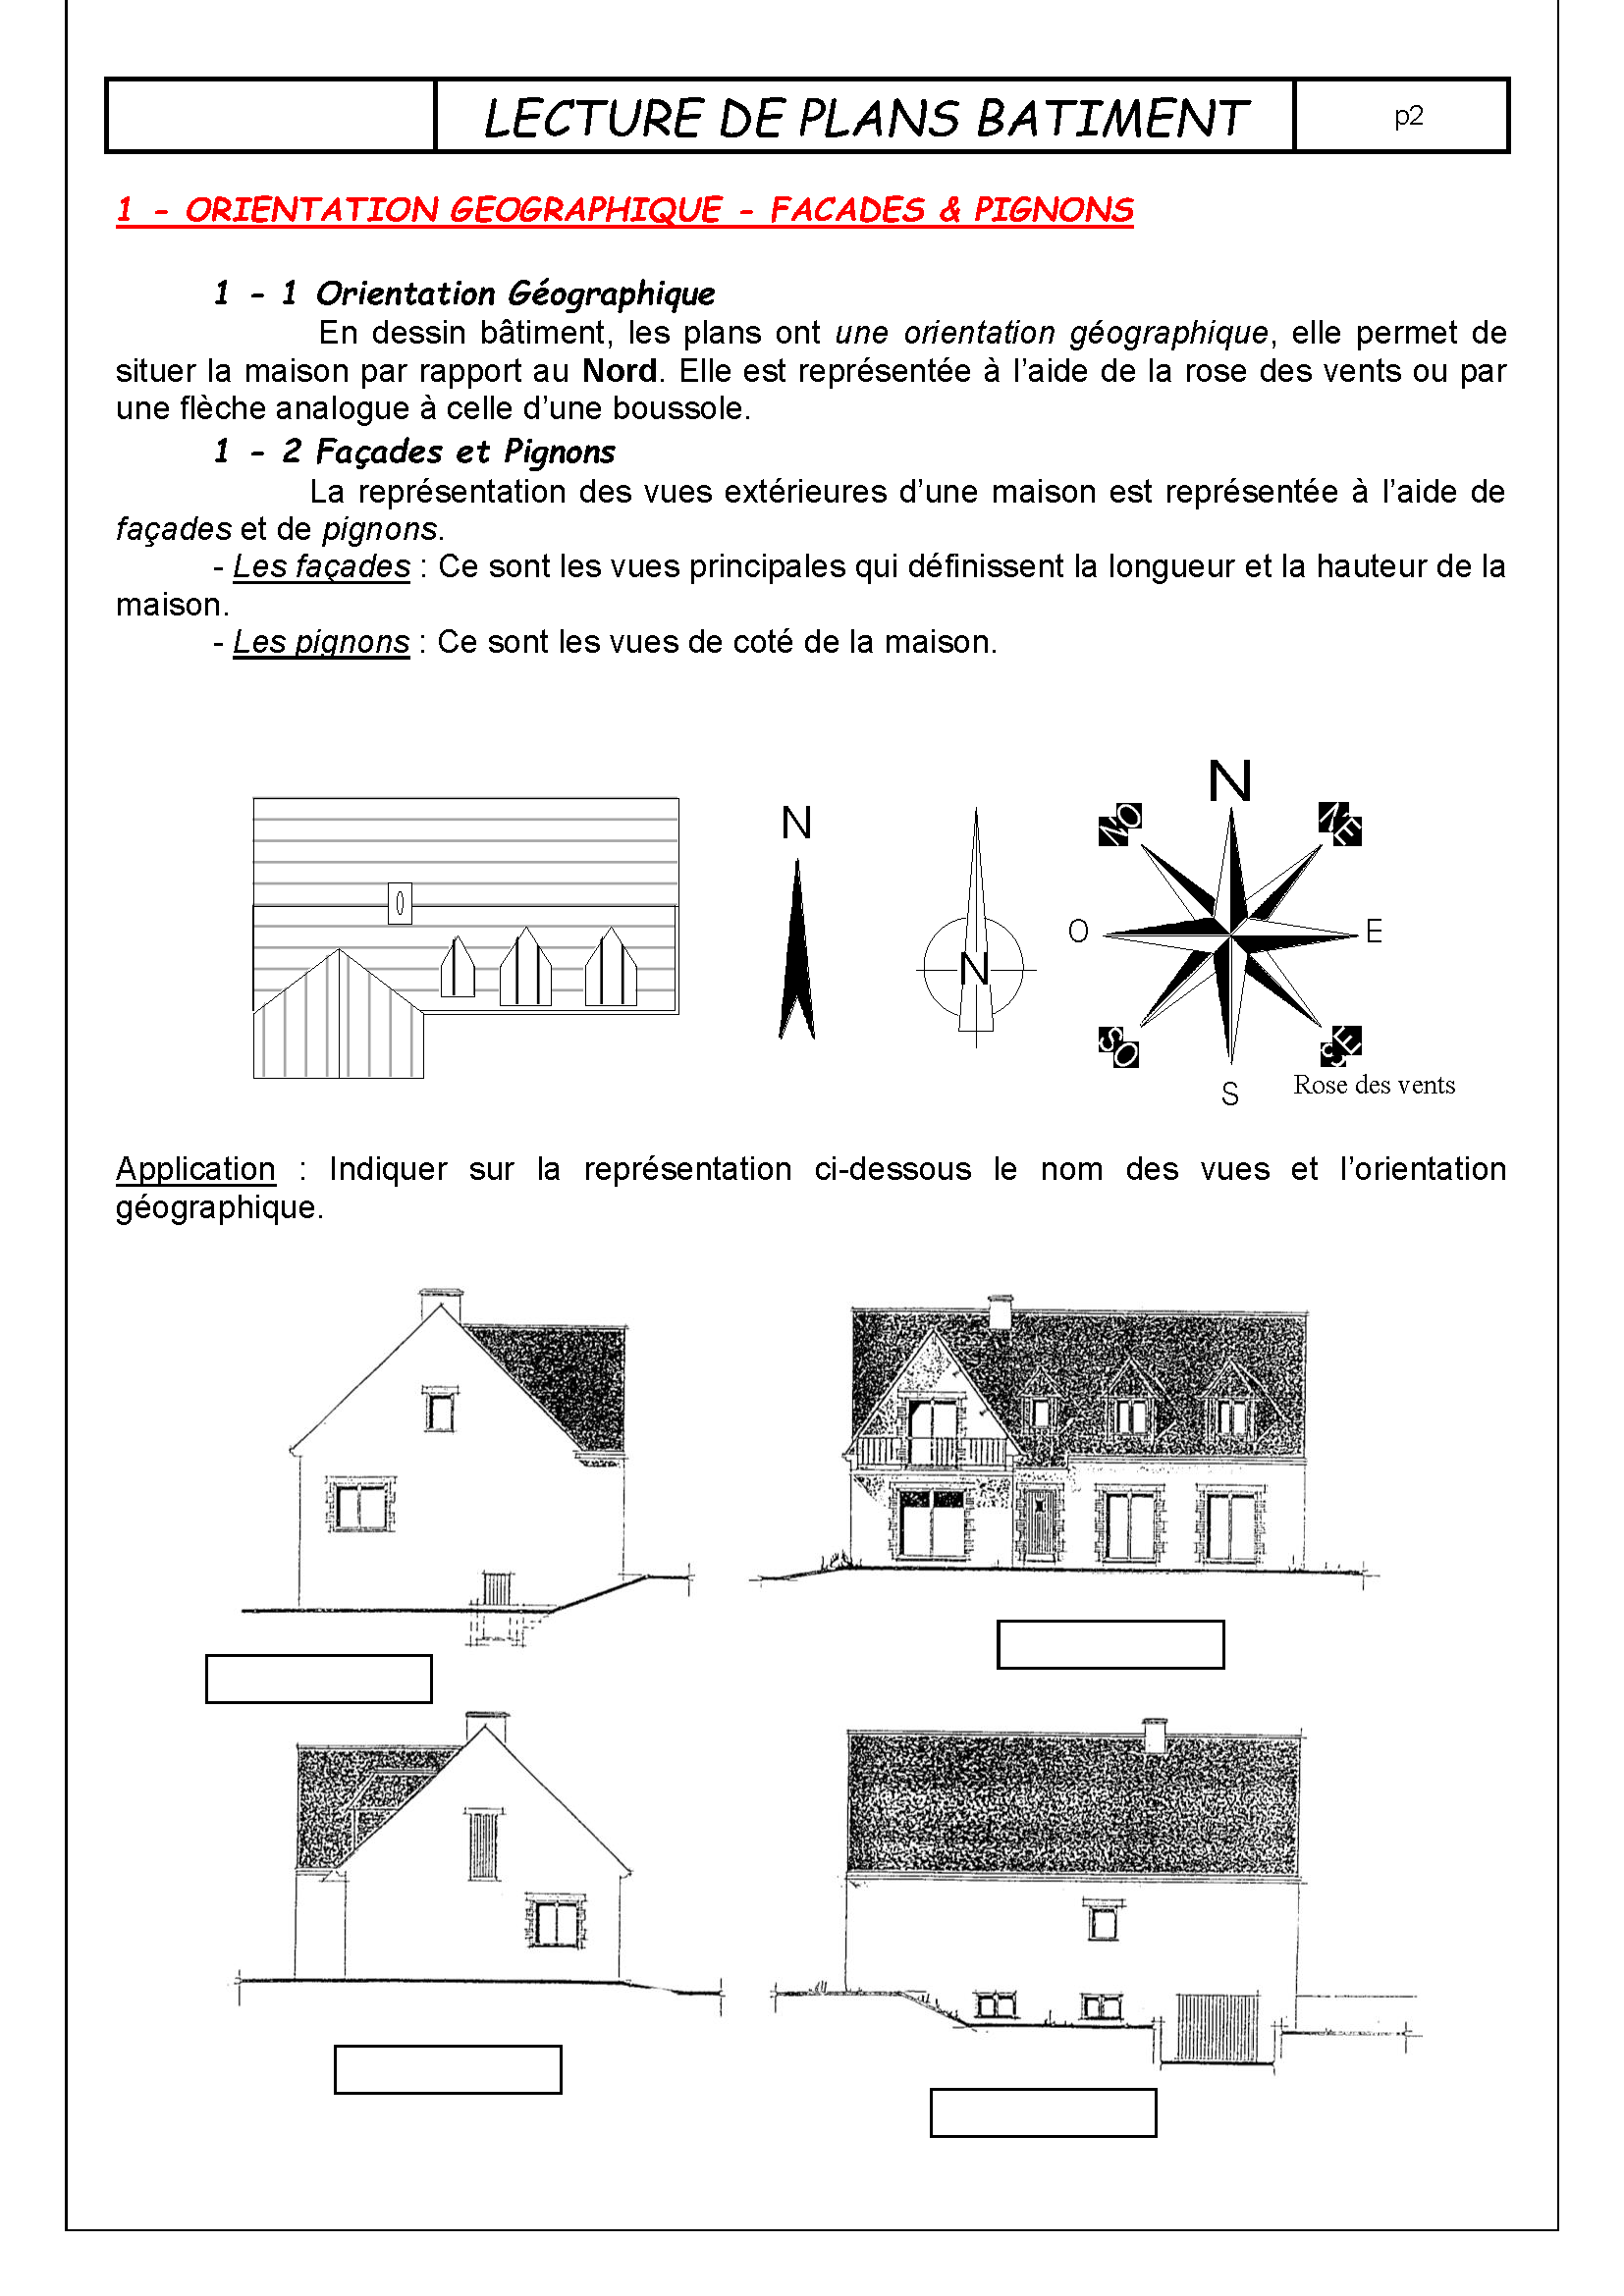 Lecture batiment page 02 for Les plans de lowe